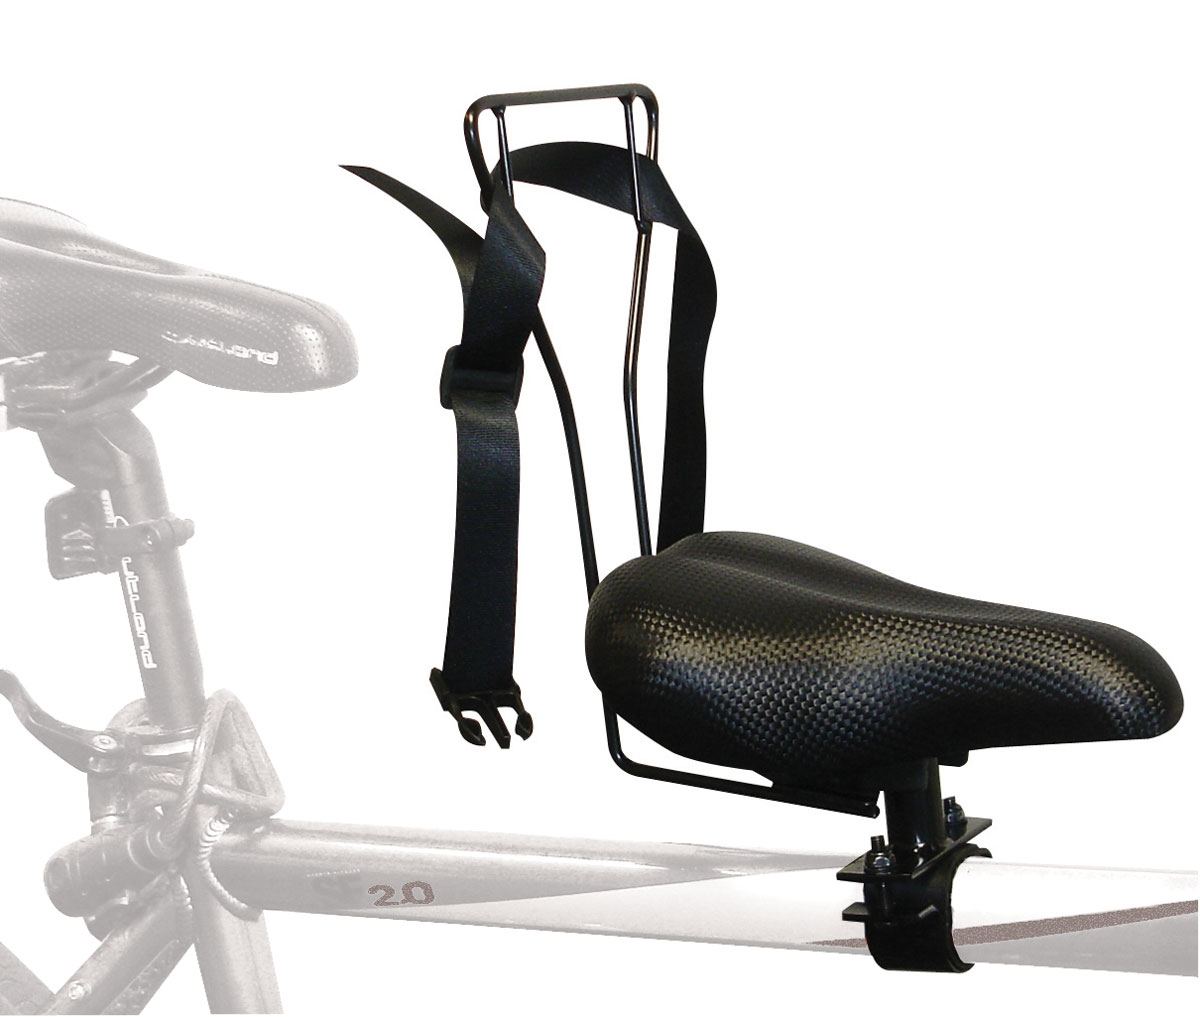 Baby chair on bike - This Is The Oxford Leco Top Tube Seat Footrests Not Shown